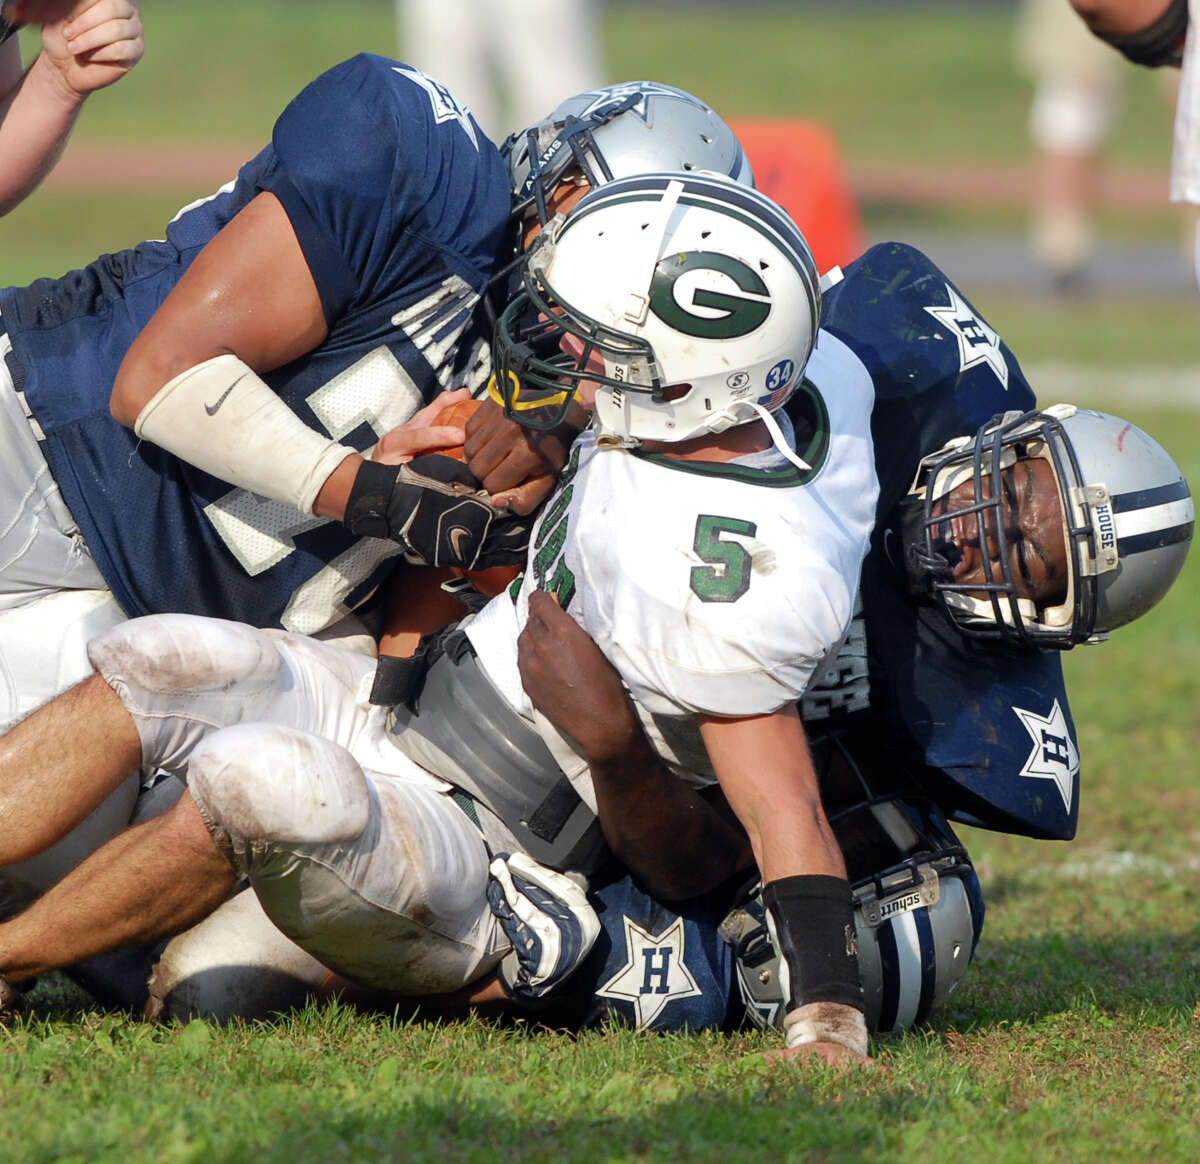 NE10/5/07 2HHGuil ML0397E Bowen Field, New Haven: Hillhouse's Tavon Wilkins left and Reno Dunkley right stopping Guilford's Fred Turcio. Photo by Mara Lavitt